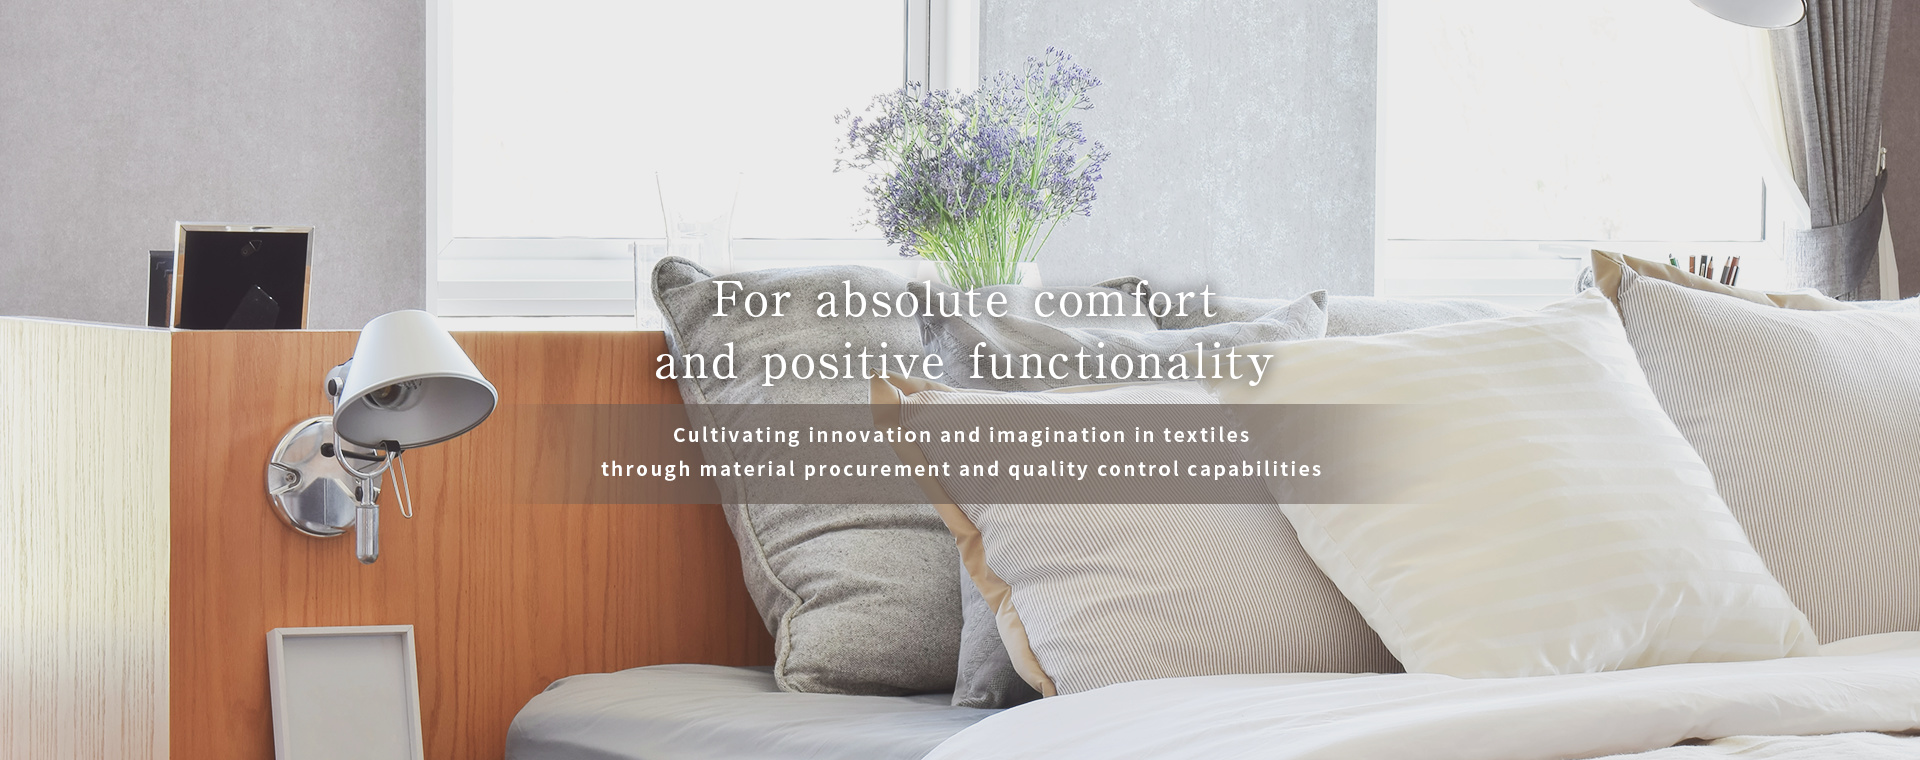 For absolute comfort and positive functionality